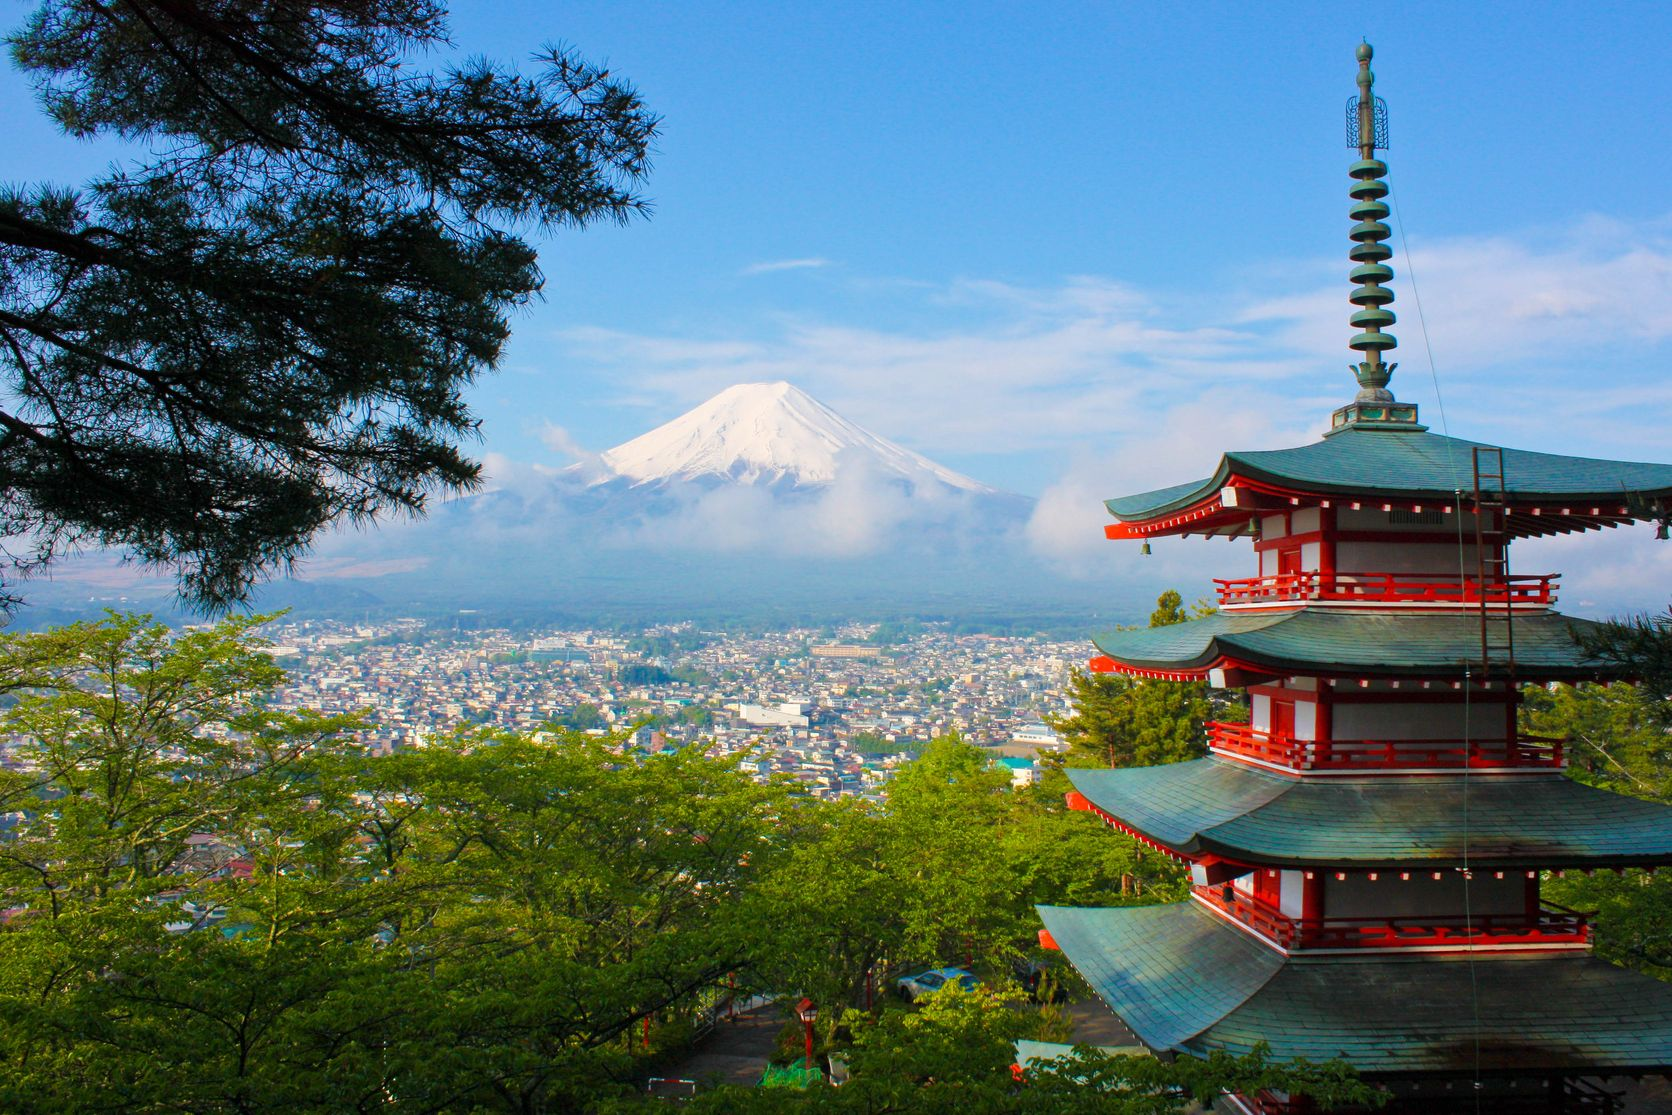 Japanese pagoda overlooking a city with snowy Mount Fuji in the background